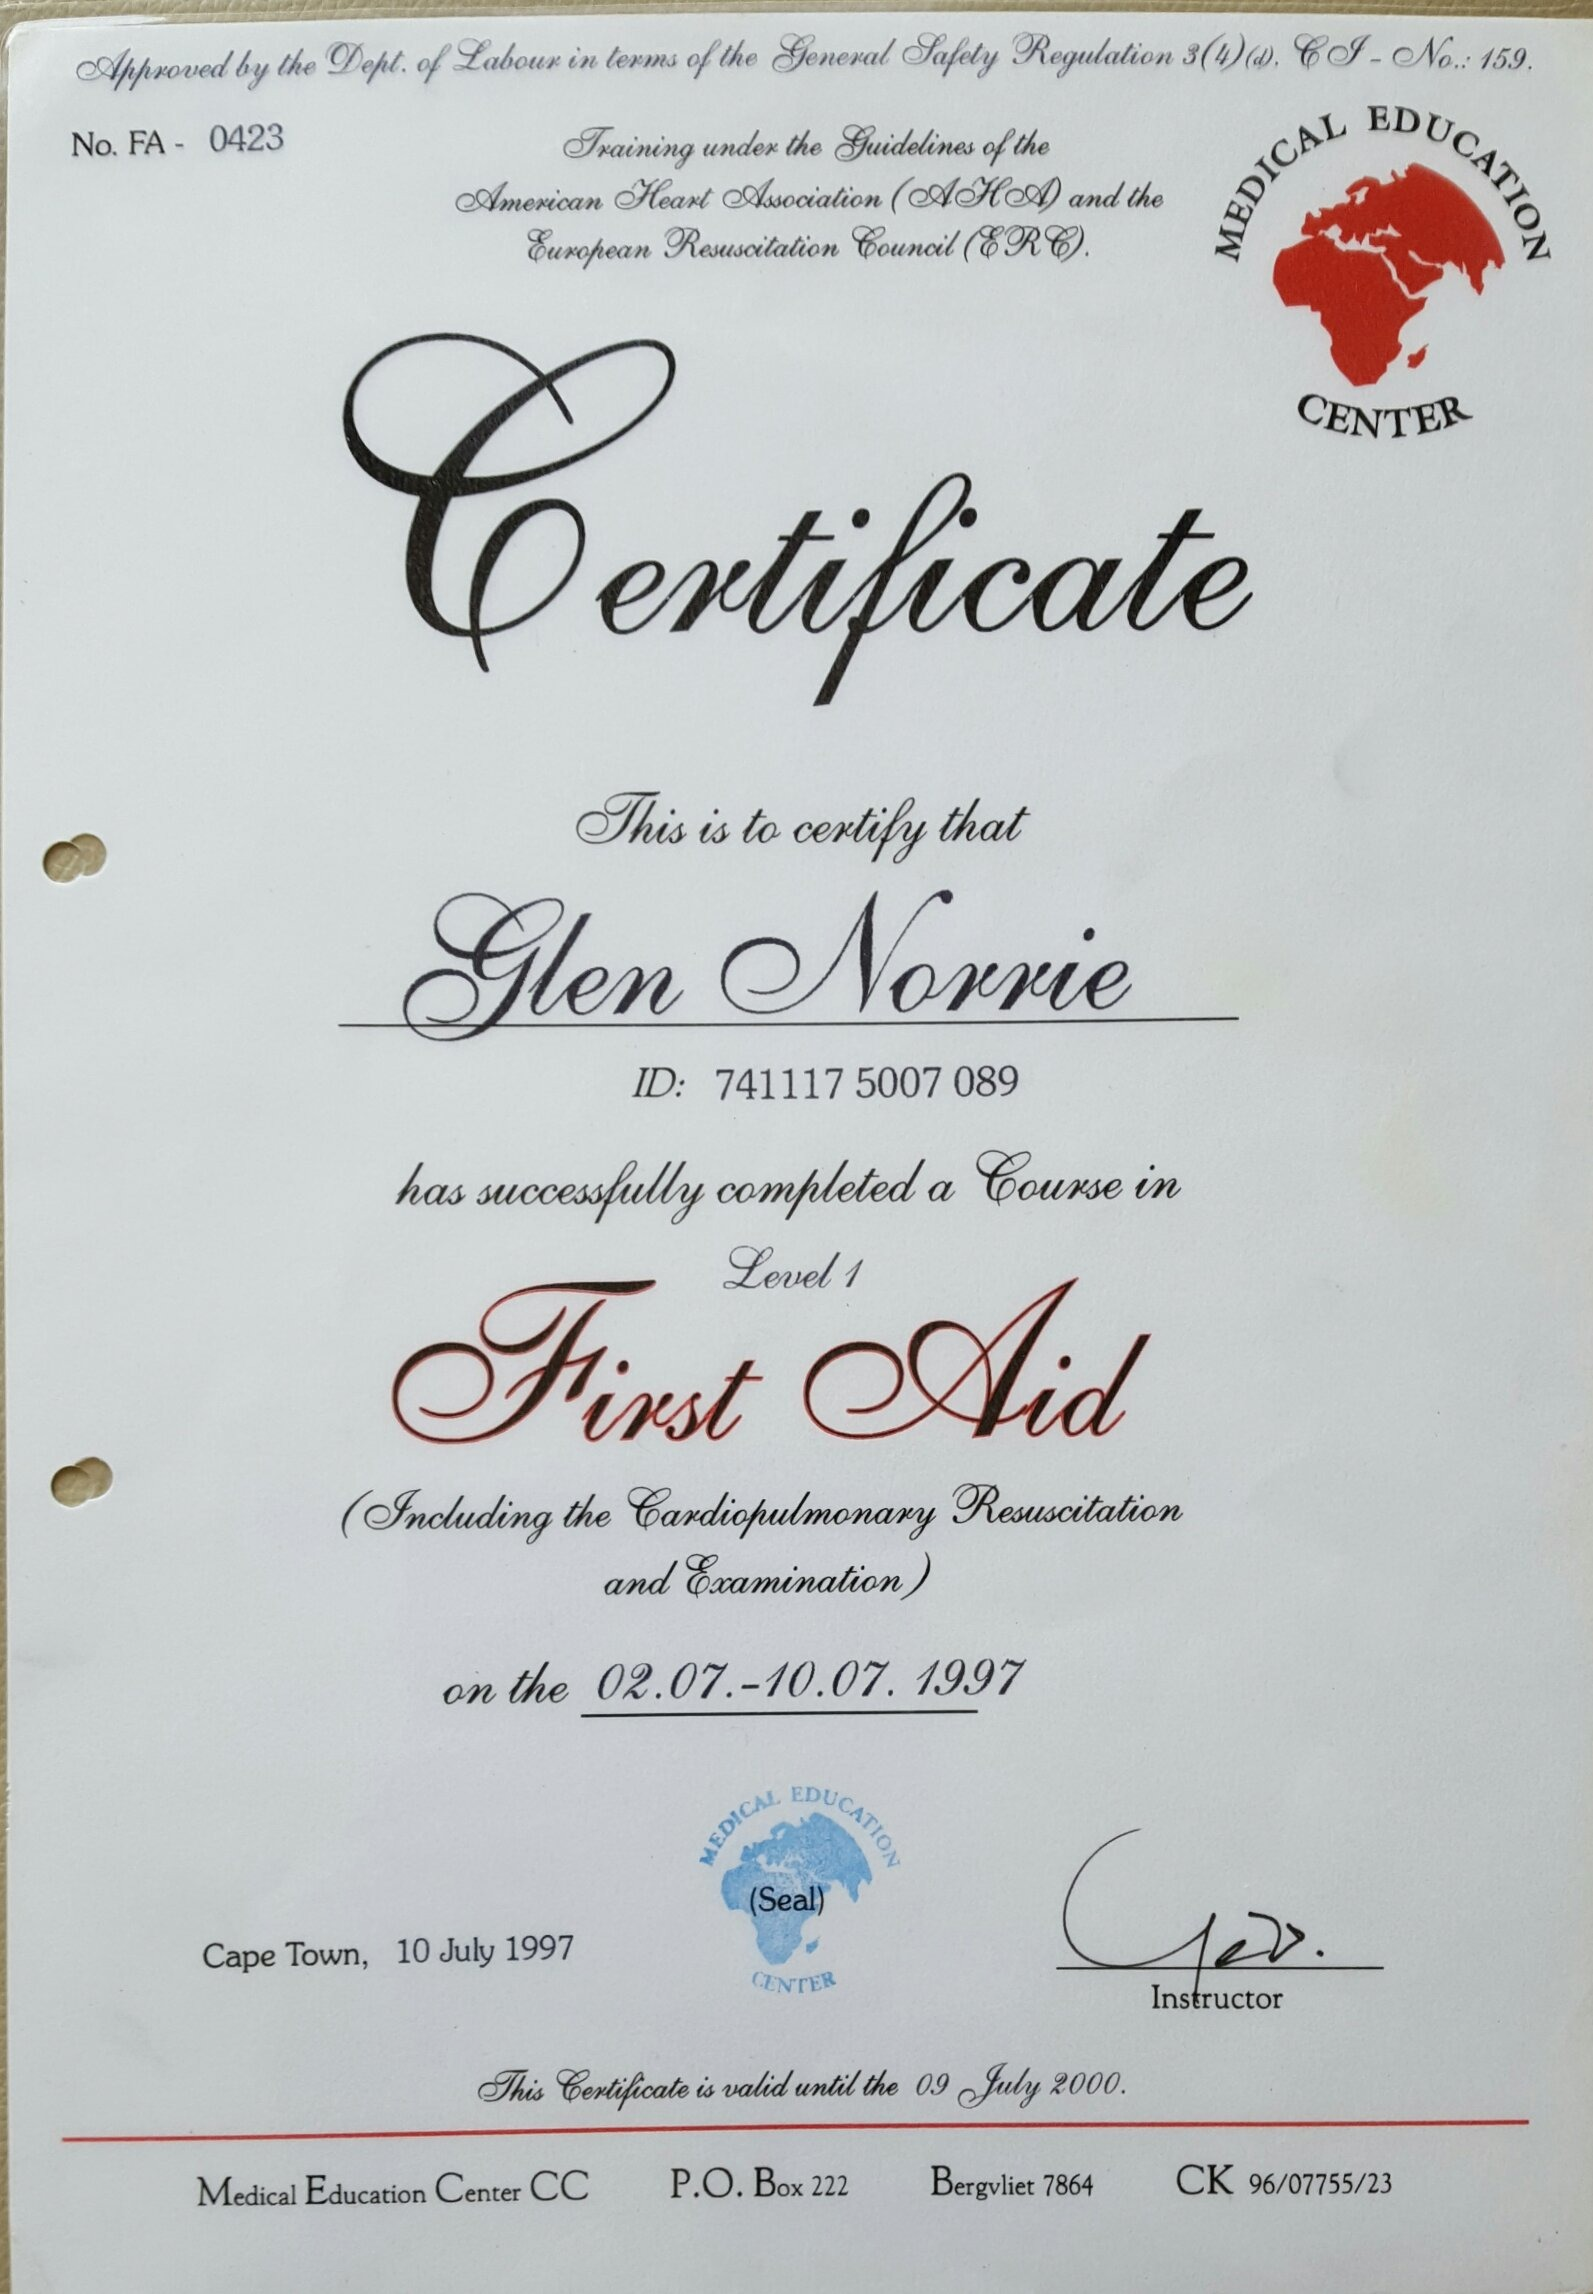 Basic first aid certificate template images certificate design first aid training certificate template choice image templates basic first aid certificate template choice image certificate 1betcityfo Gallery